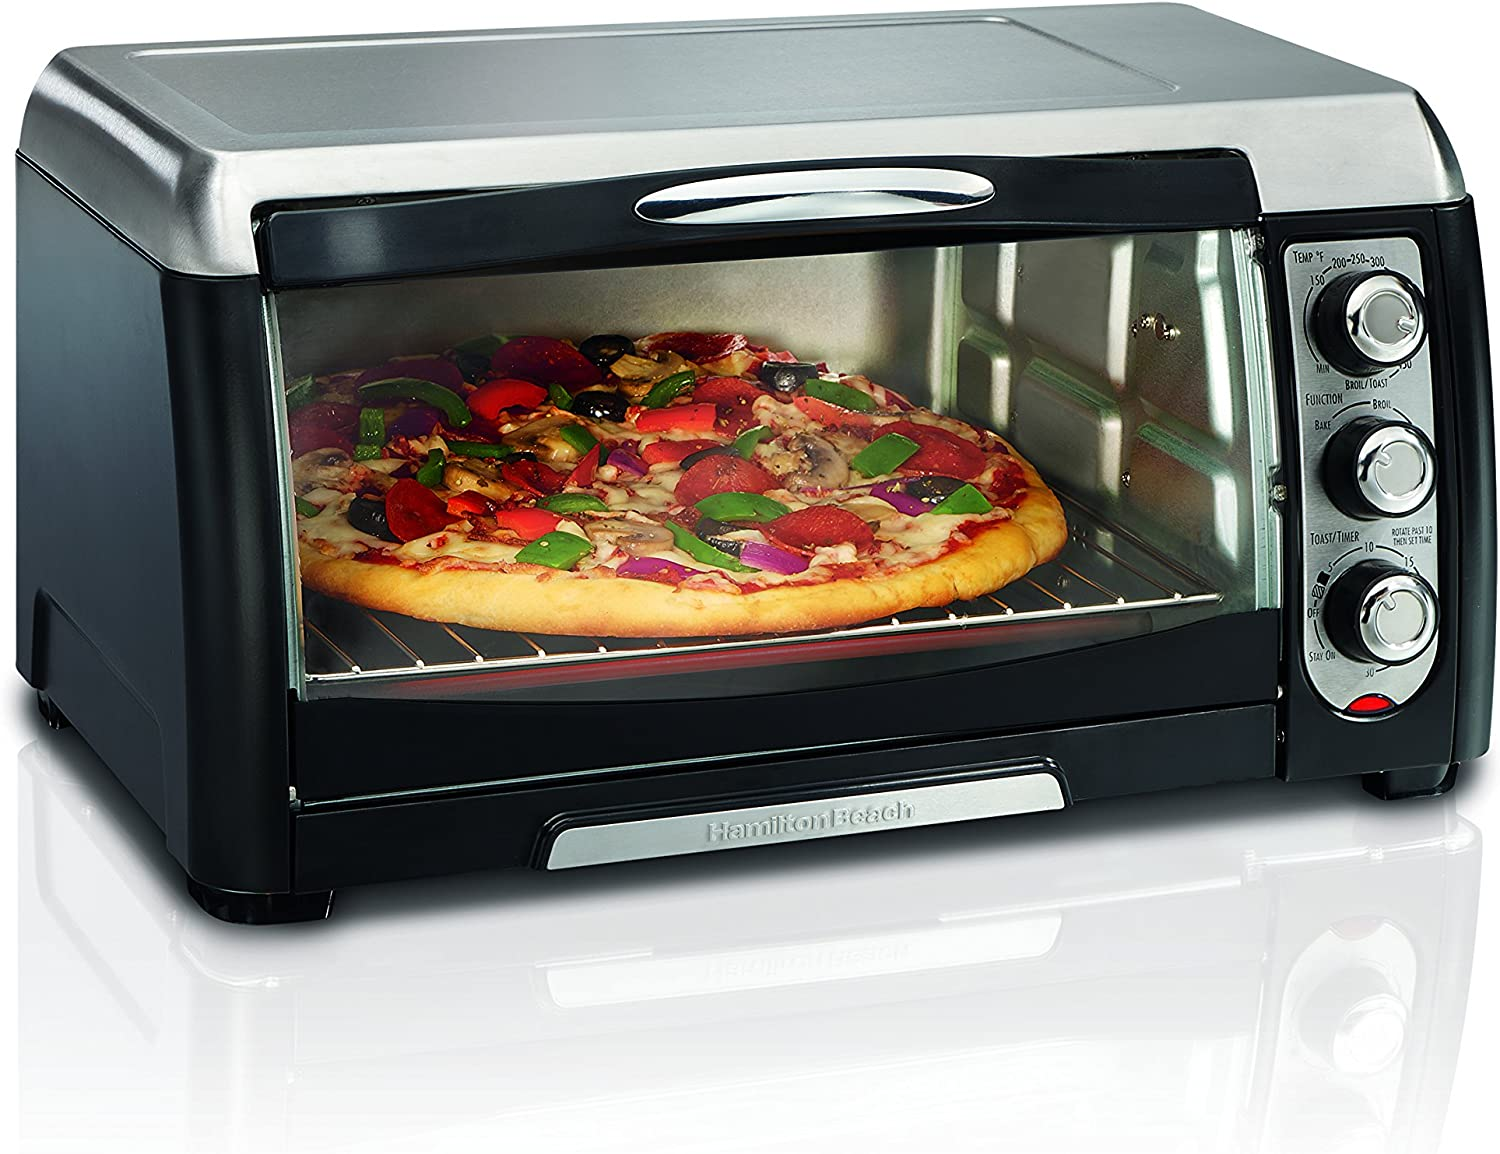 Hamilton Beach Countertop Toaster Oven, 6-Slices, Includes Bake Pan and Broil Rack, Black (31330D)